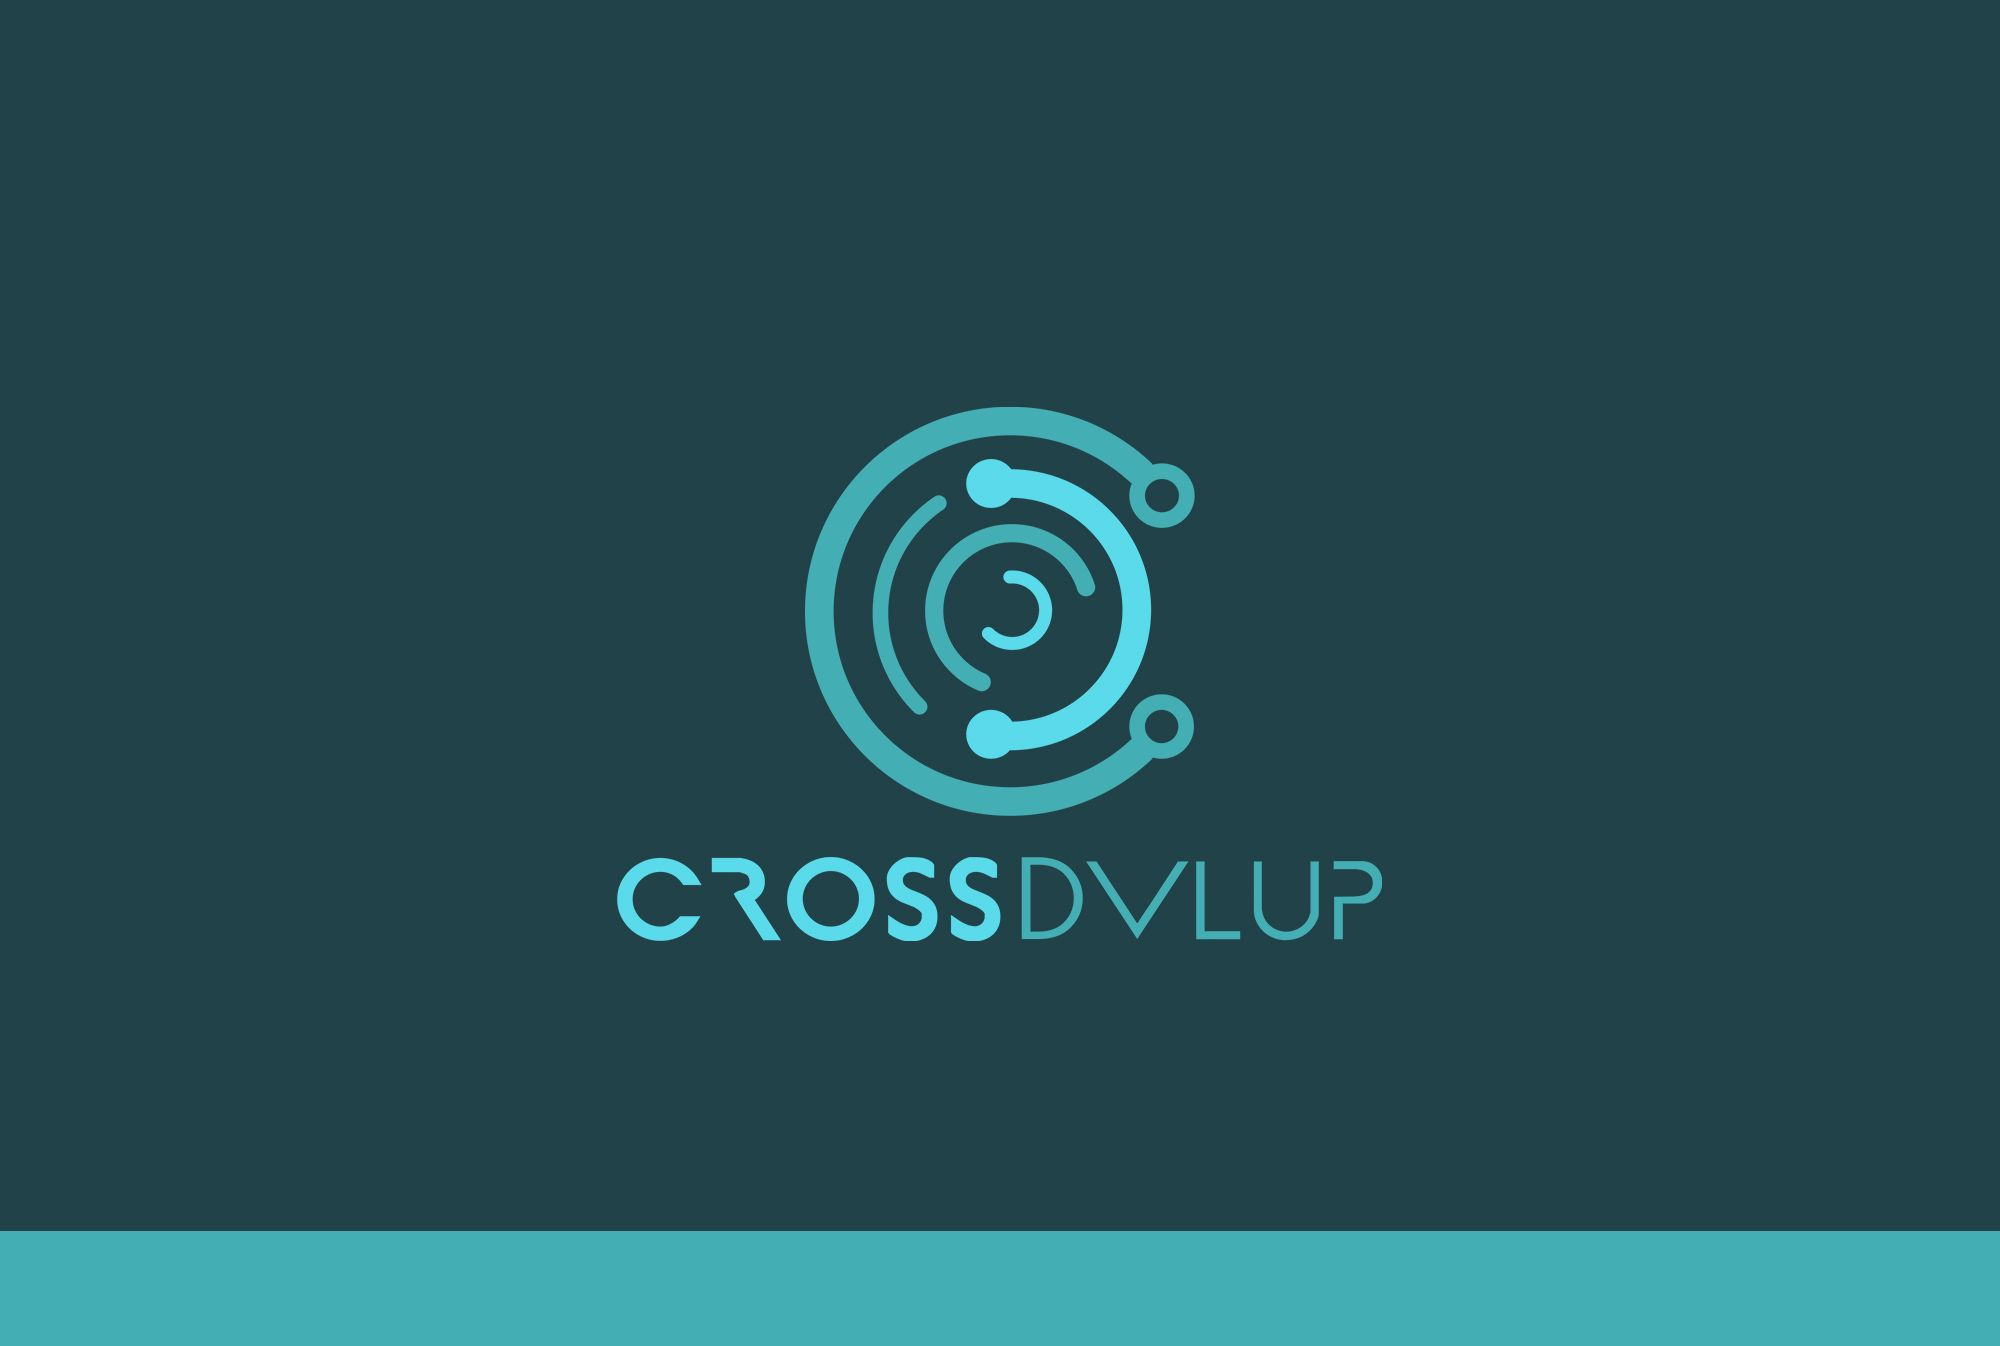 CrossDvlup Madrid